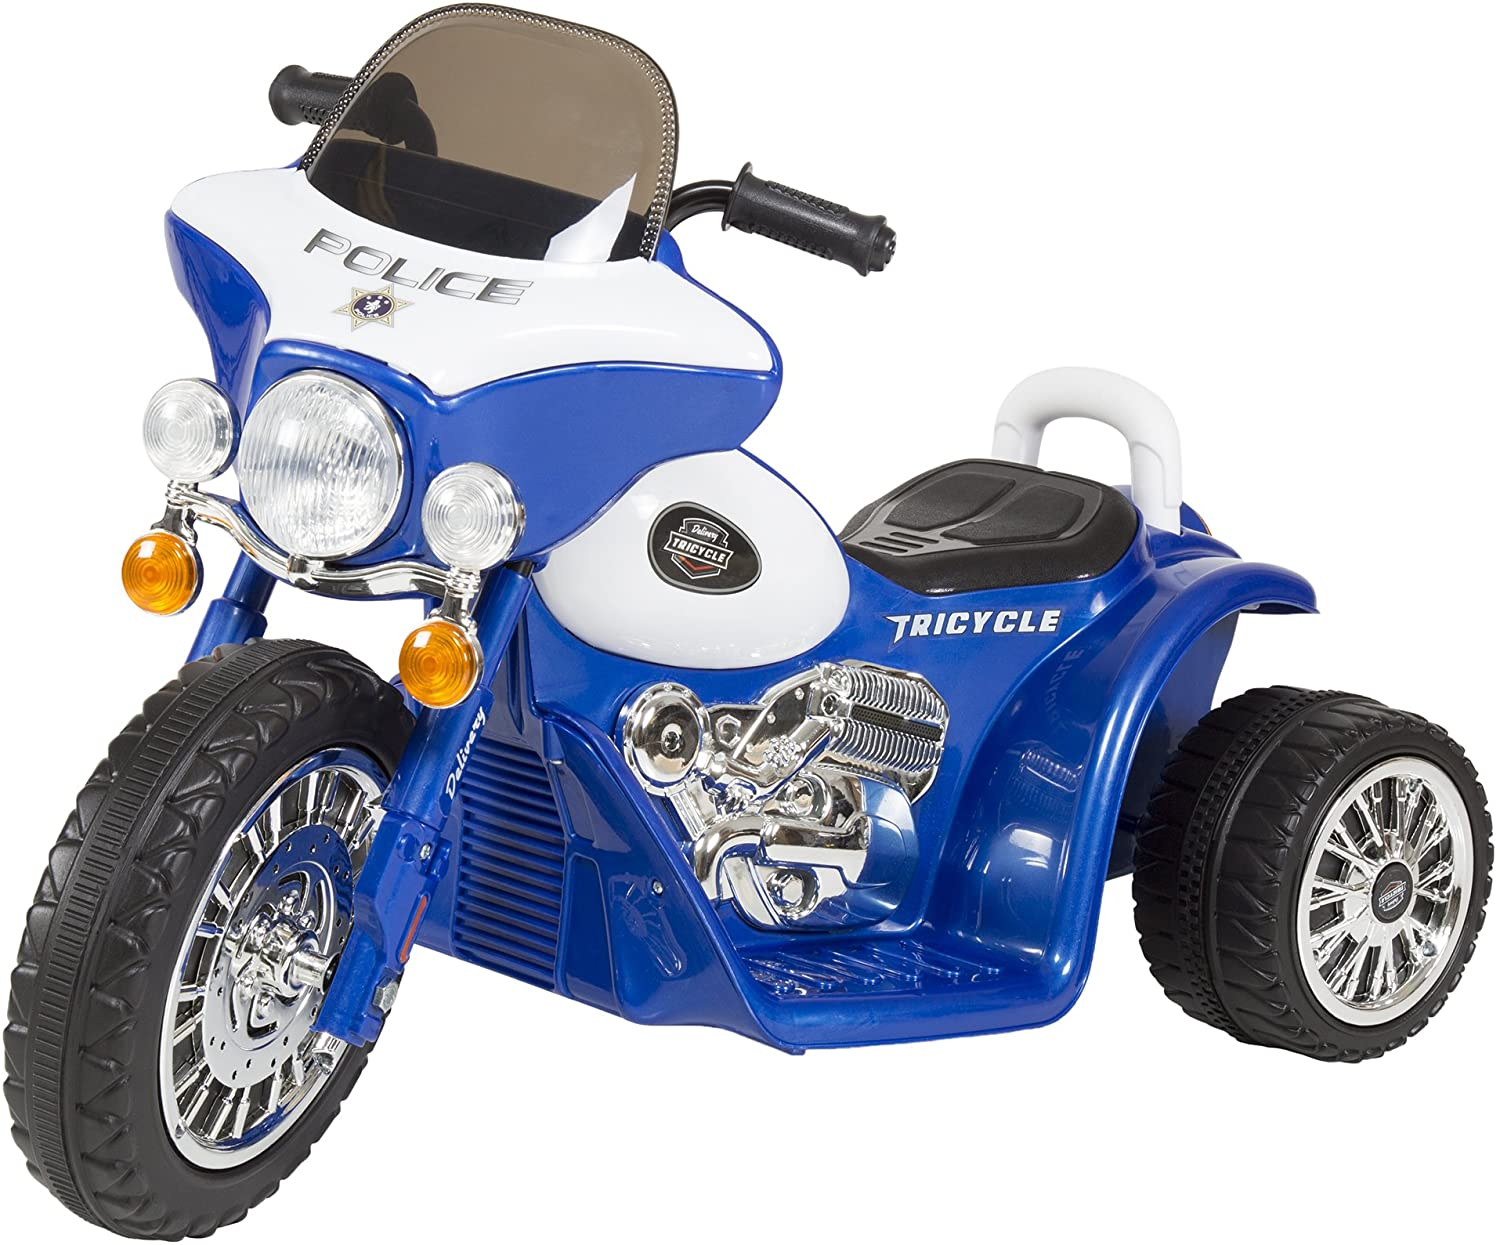 3 Wheel Mini Motorcycle Trike for Kids, Battery Powered Ride on Toy by Rockin ' Rollers– Toys for Boys and Girls, 2 - 5 Year Old– Police Car Blue